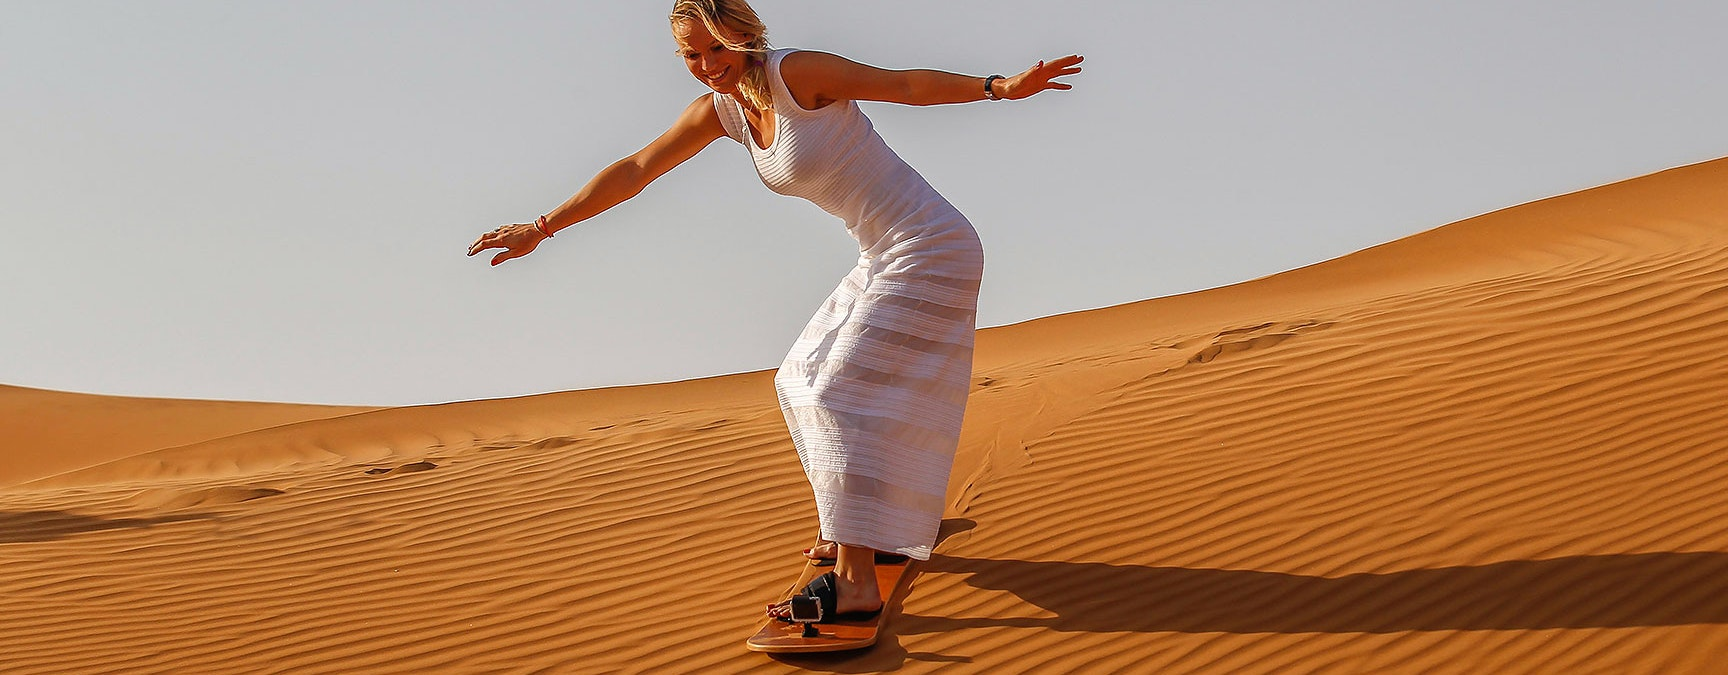 adventure desert safaris sand boarding